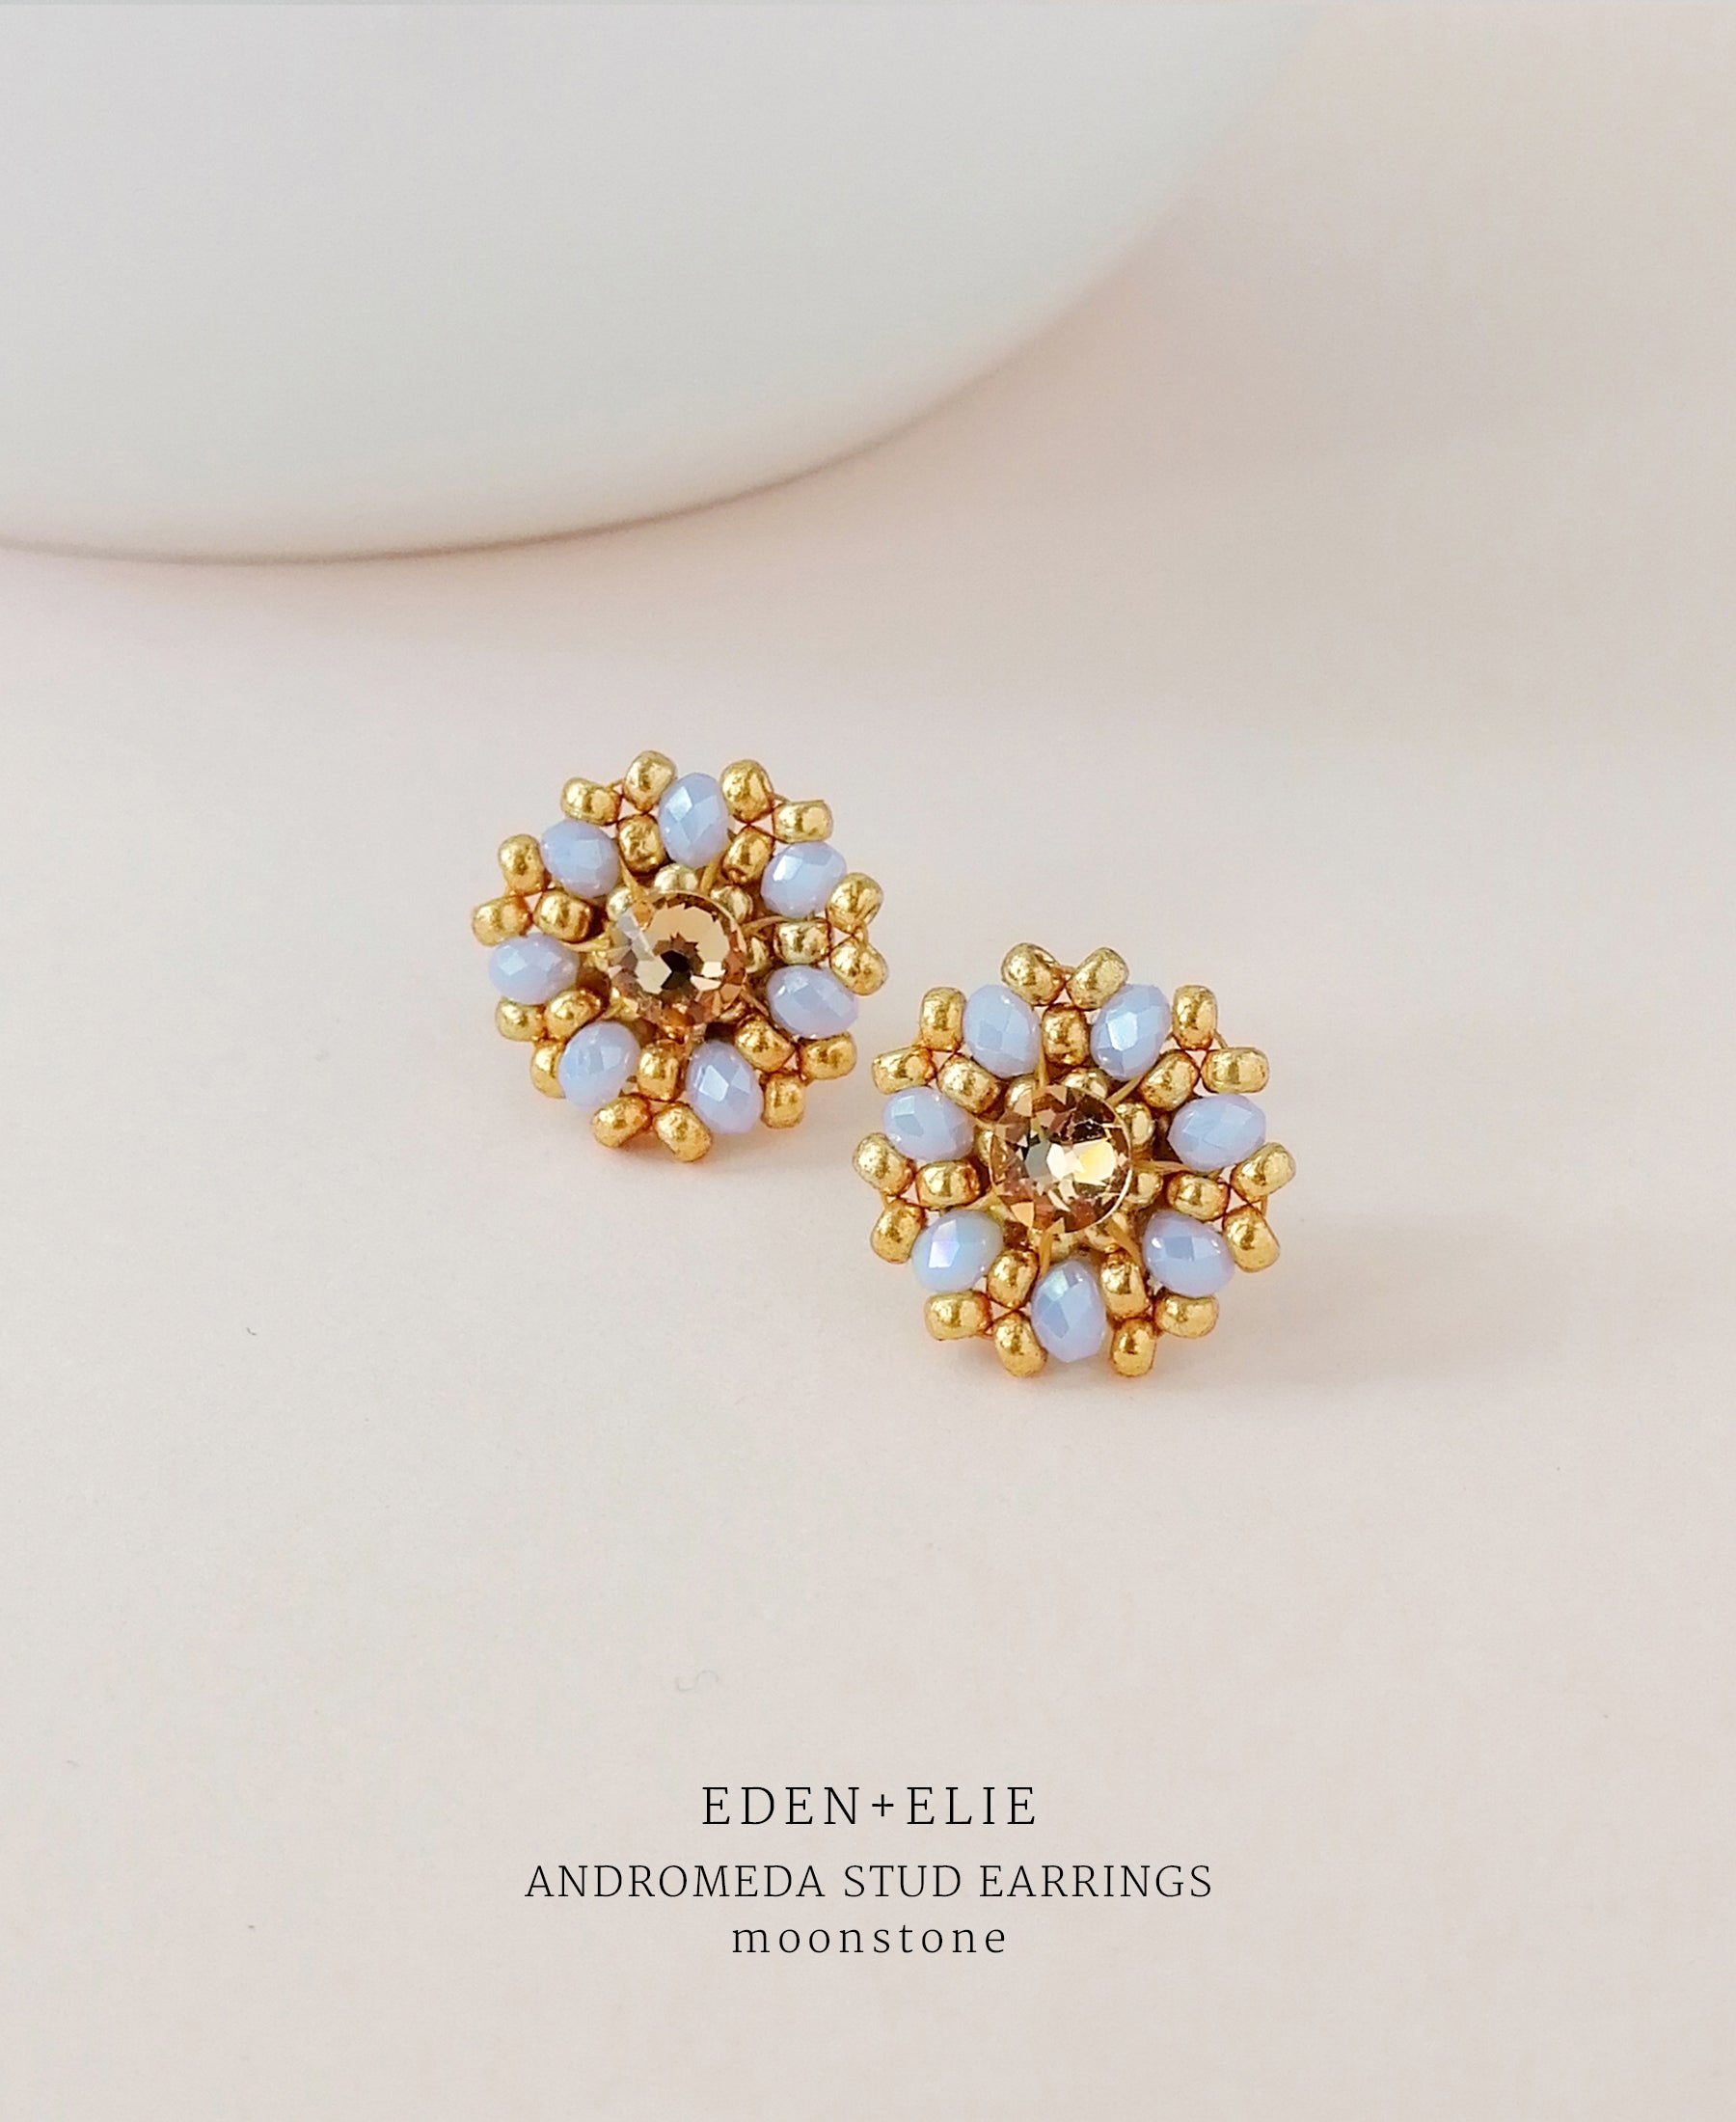 EDEN + ELIE Andromeda stud earrings - moonstone